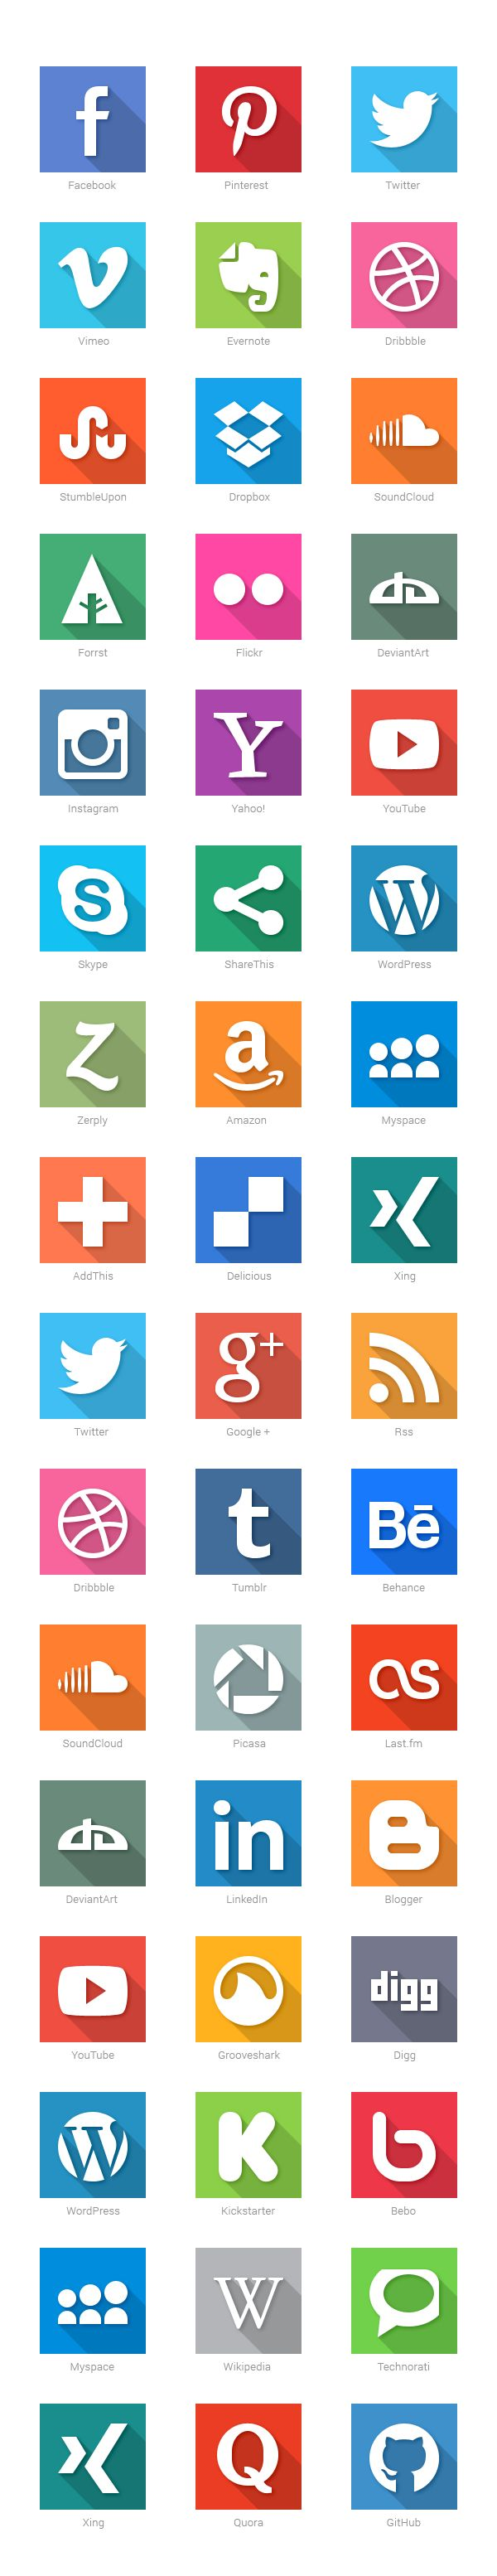 40 Social Media Flat Icons by GraphicBurger , via Behance PD